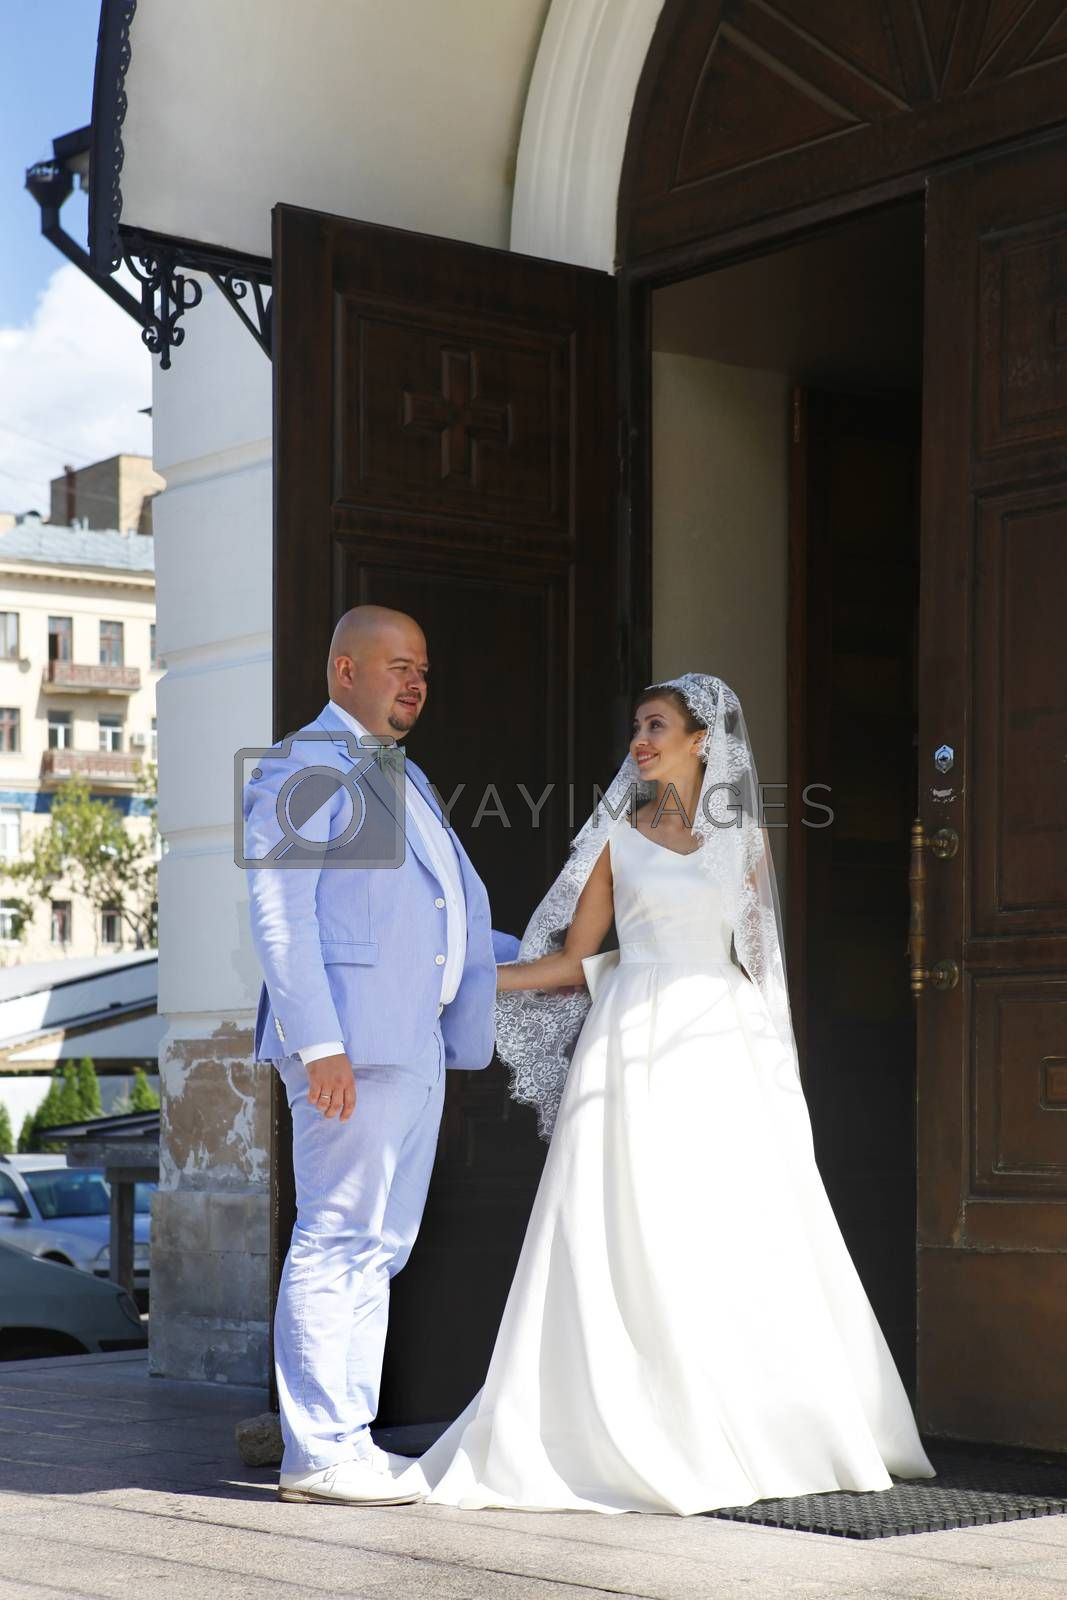 Newlyweds enter the church for the ceremony